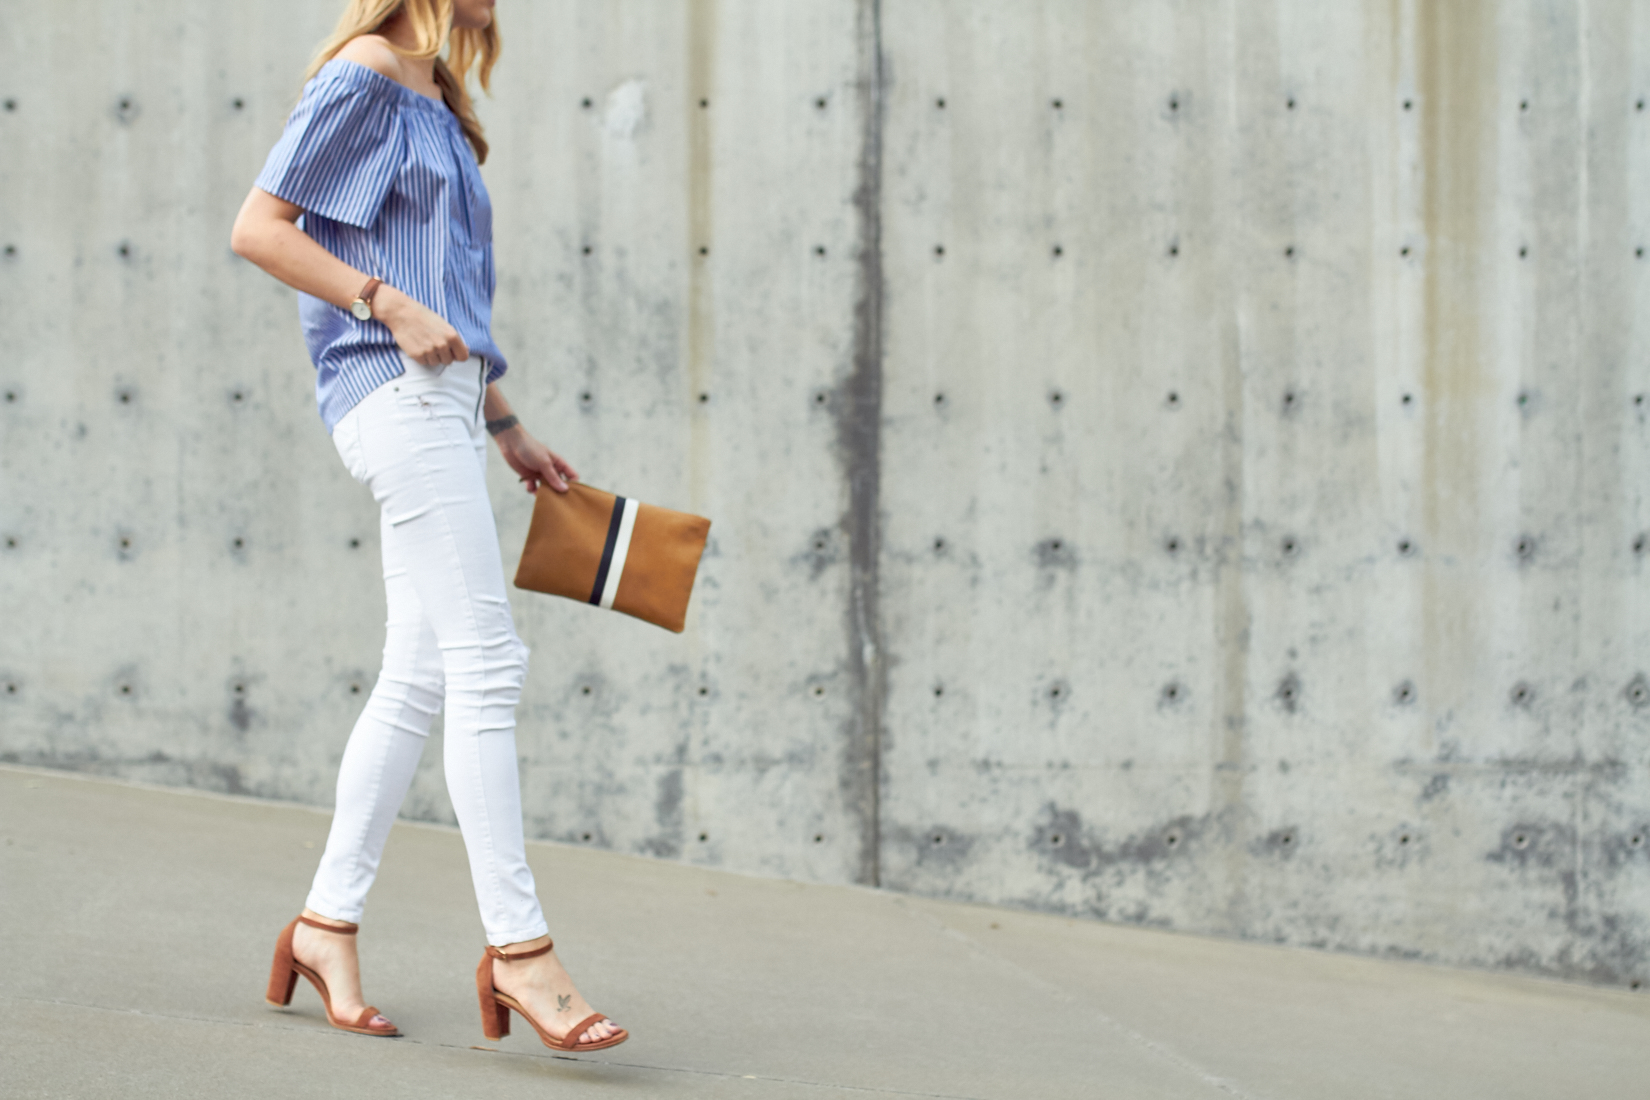 fashion-jackson-banana-republic-blue-stripe-off-the-shoulder-top-clare-v-clutch-white-skinny-jeans-stuart-weitzman-nearly-nude-sandals